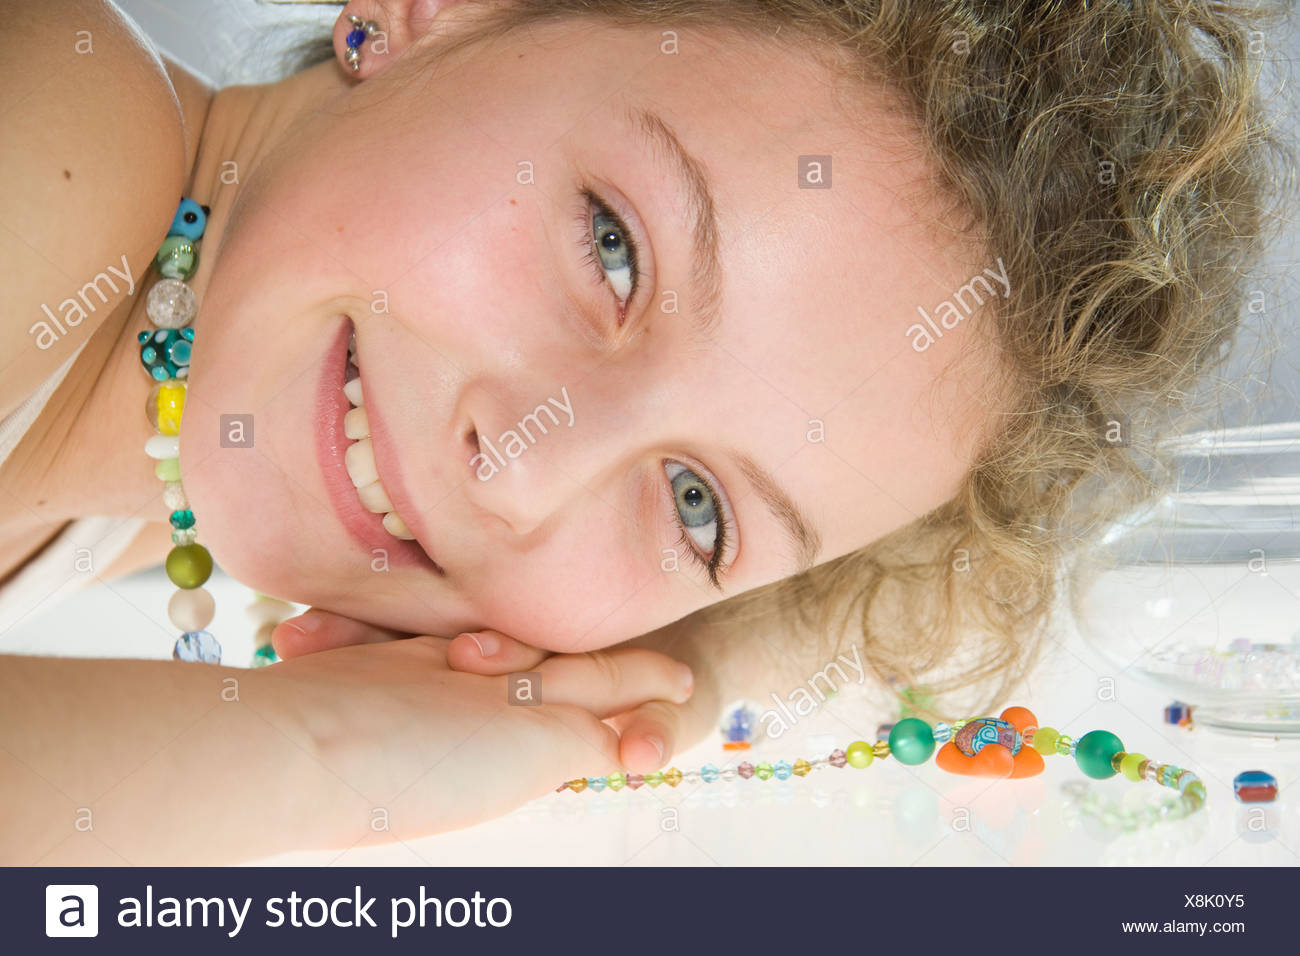 A young girl wearing a handmade bead necklace, face resting on a table - Stock Image